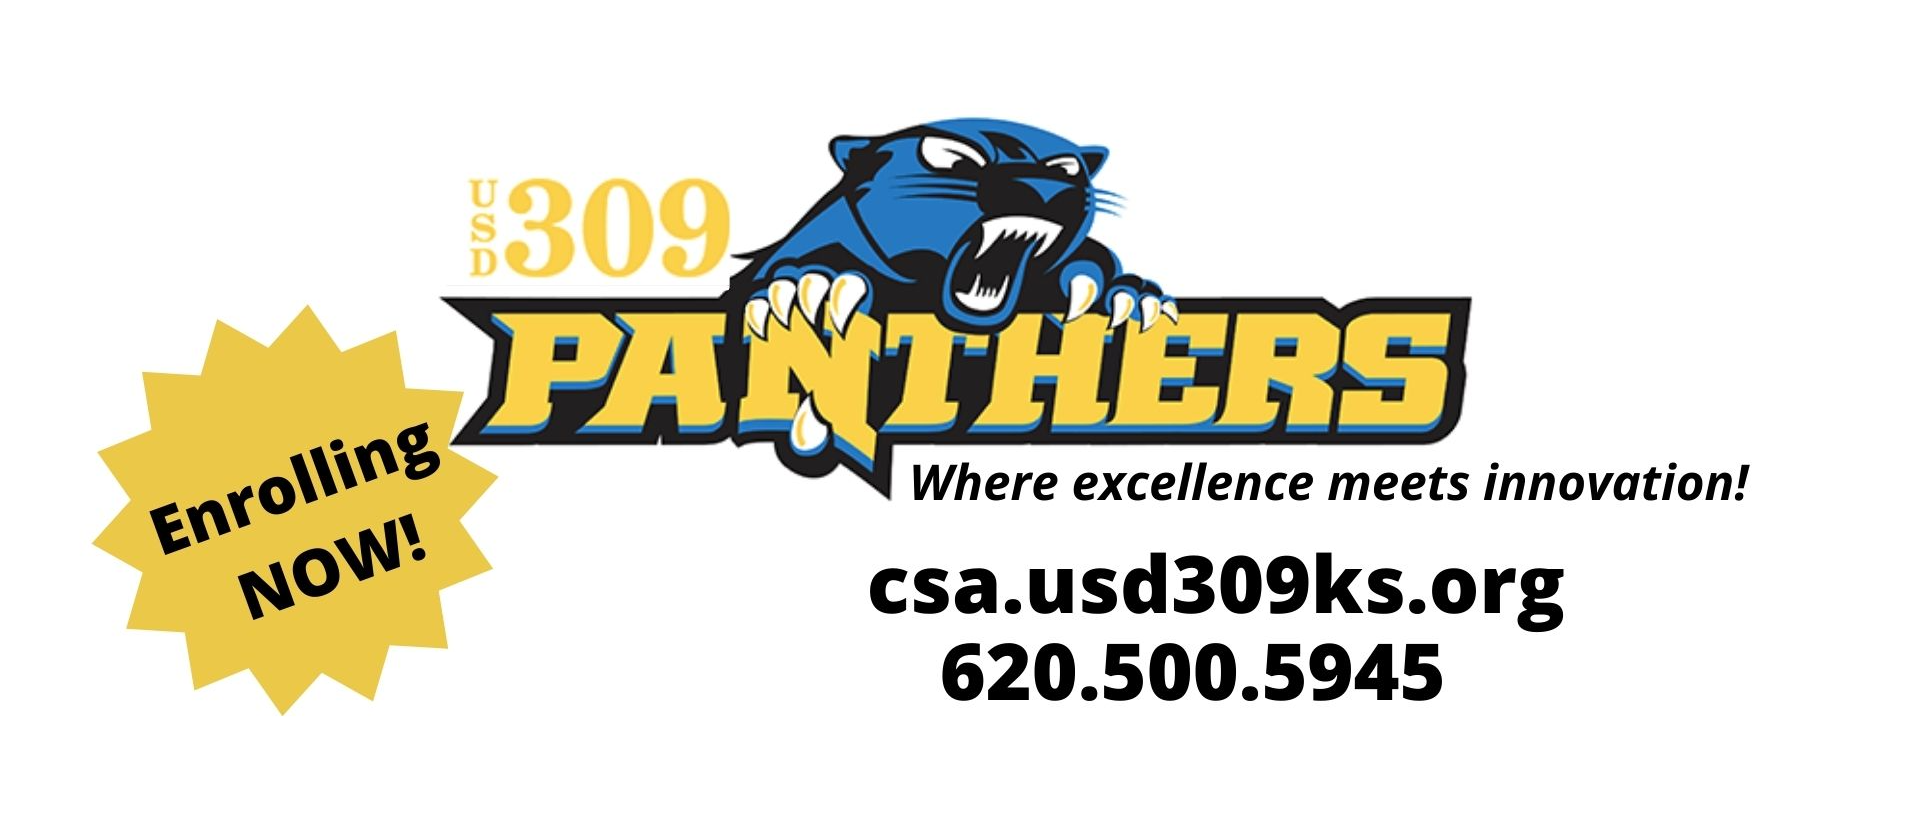 USD 309 Panthers Enrolling now. Where excellence meets innovation. csa.usd309ks.org